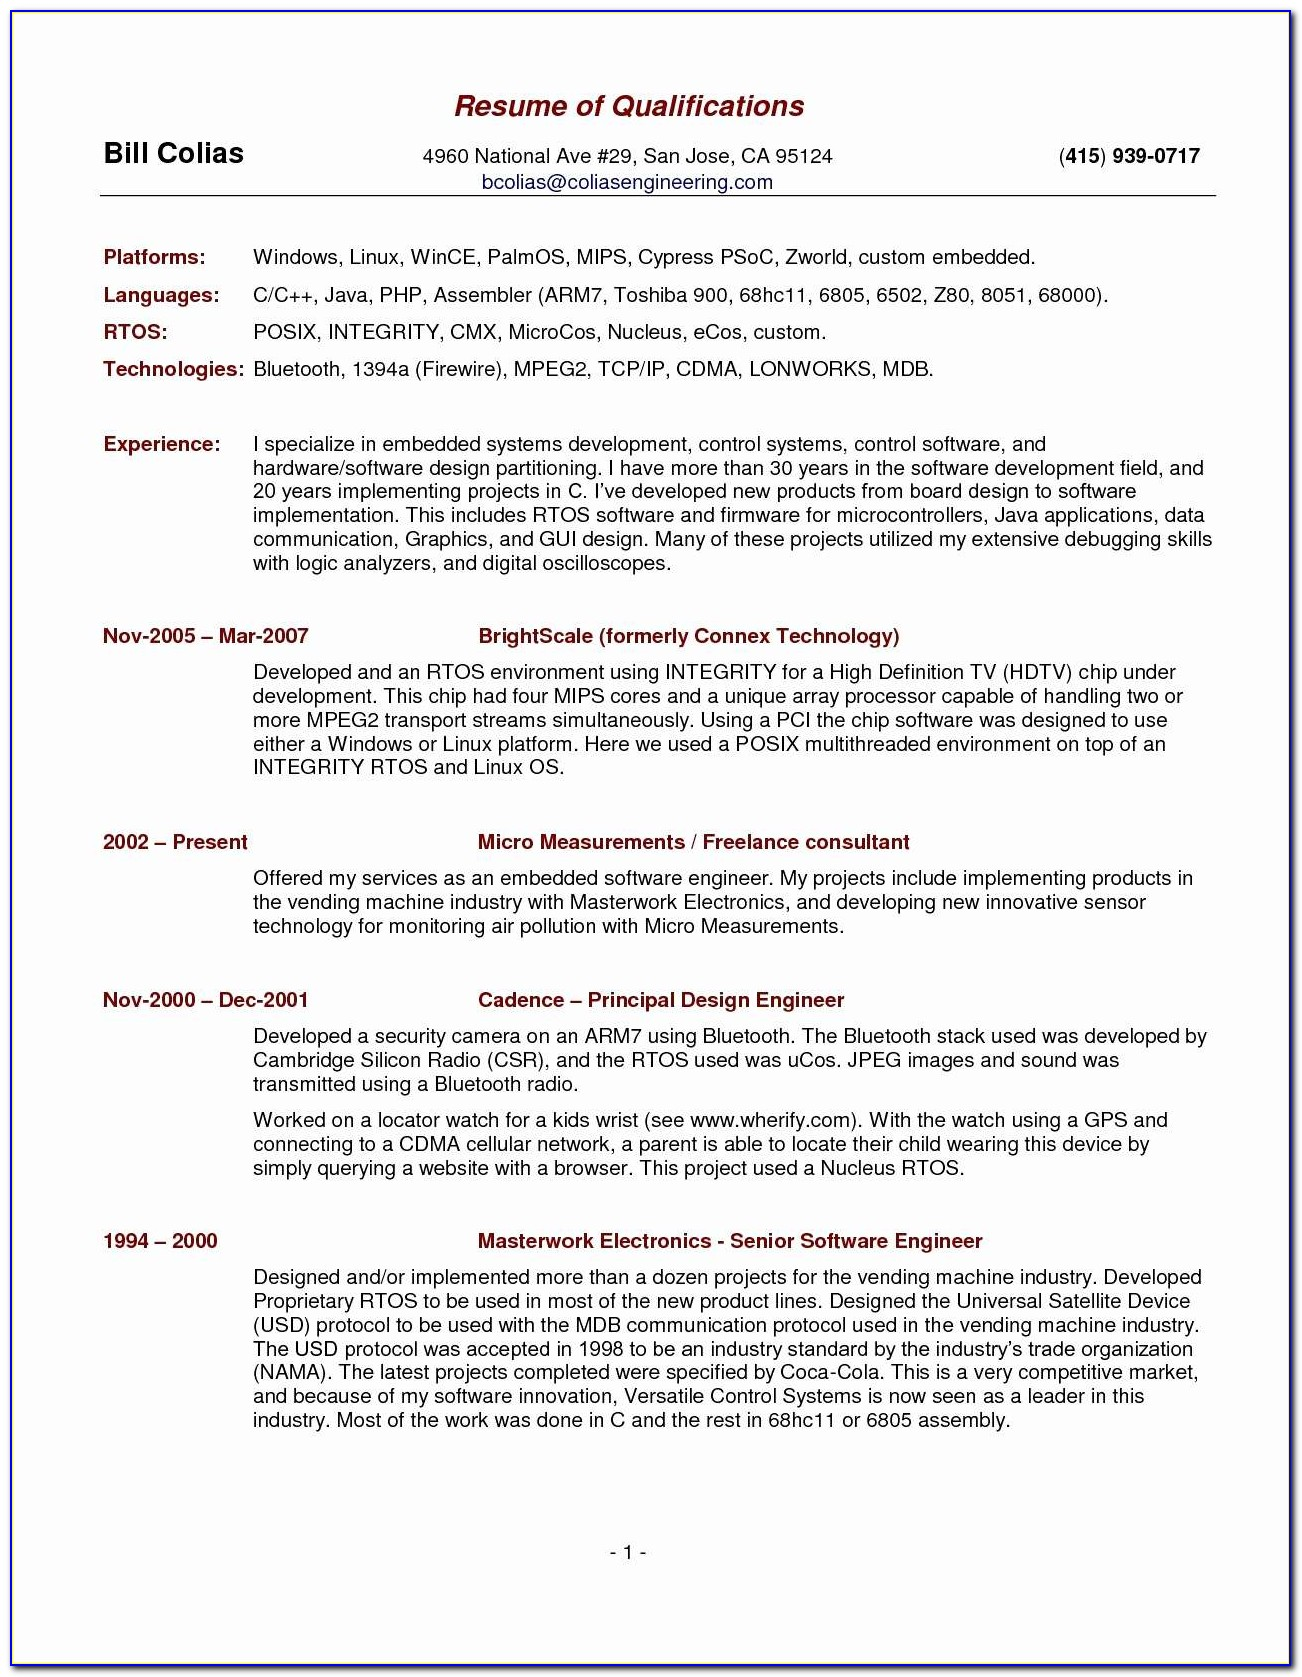 Academic Resume Template Best Of Resume Sample Fresh Uline Templates Fresh Uline Templates 0d